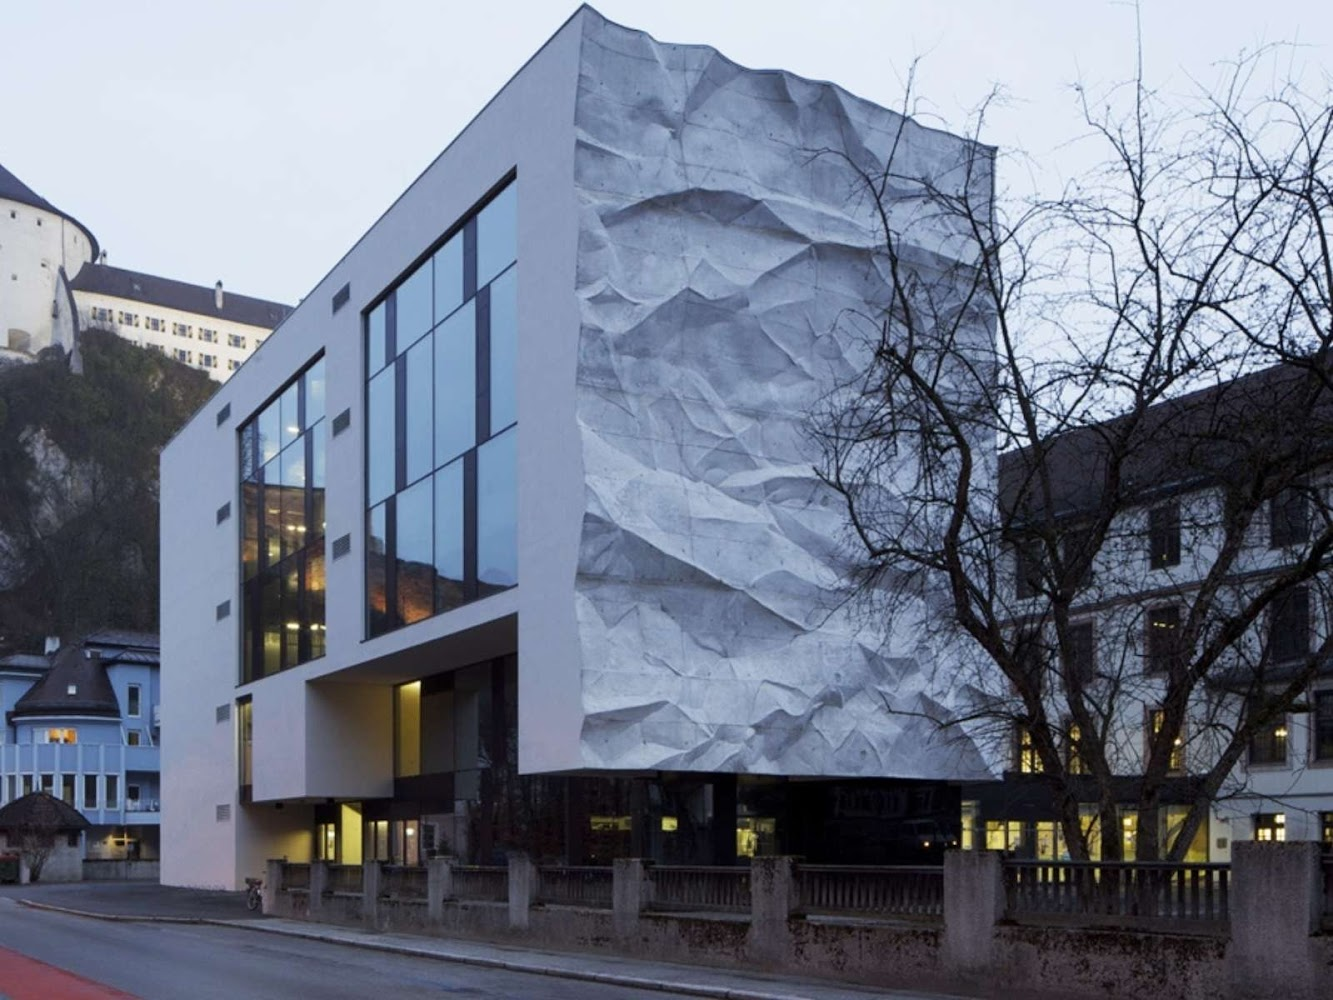 Kufstein, Austria: School Extension With Crinkled Wall by Johannes Wiesflecker